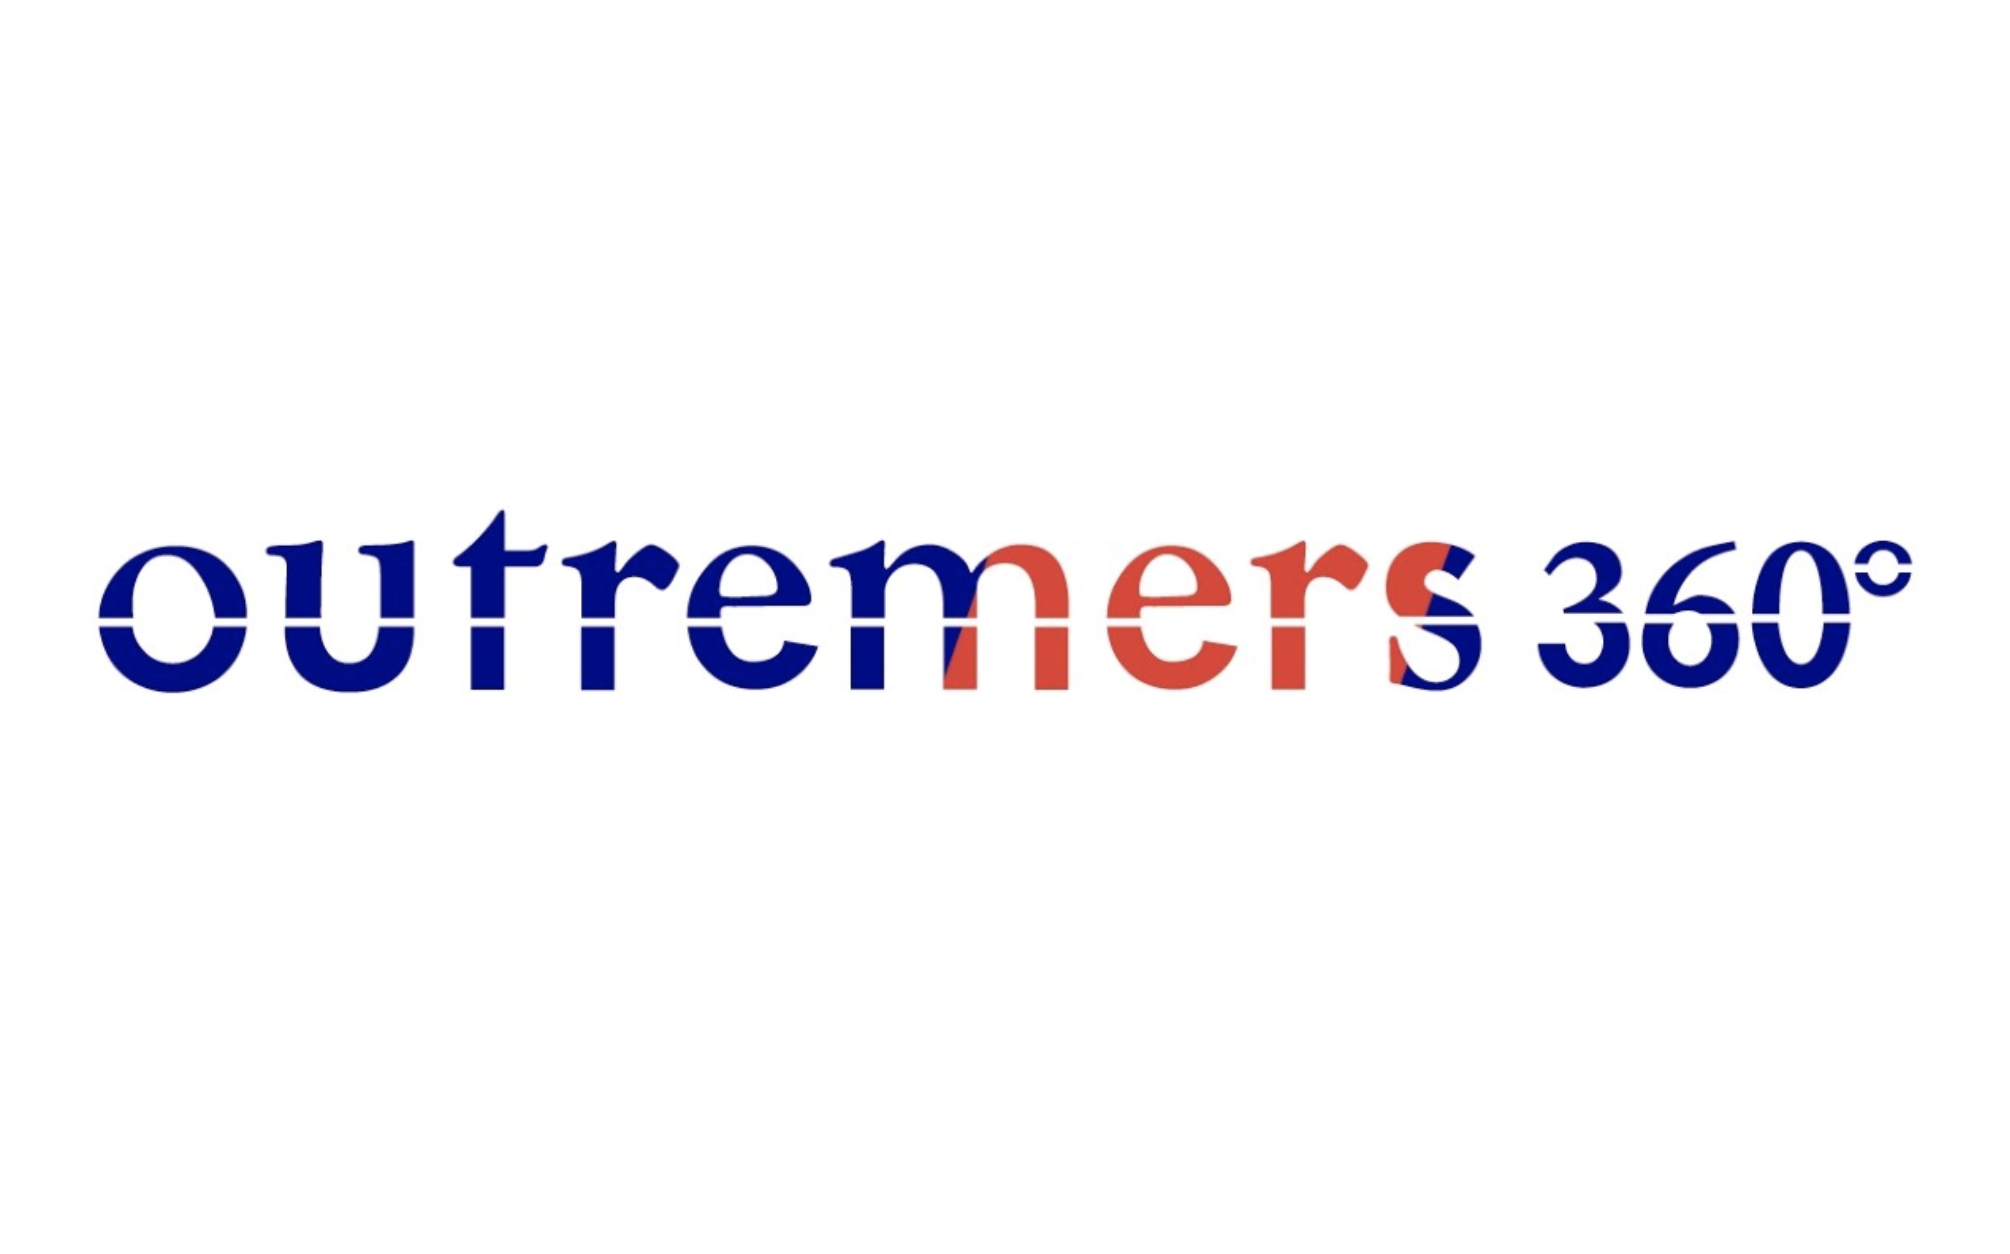 outremer 360